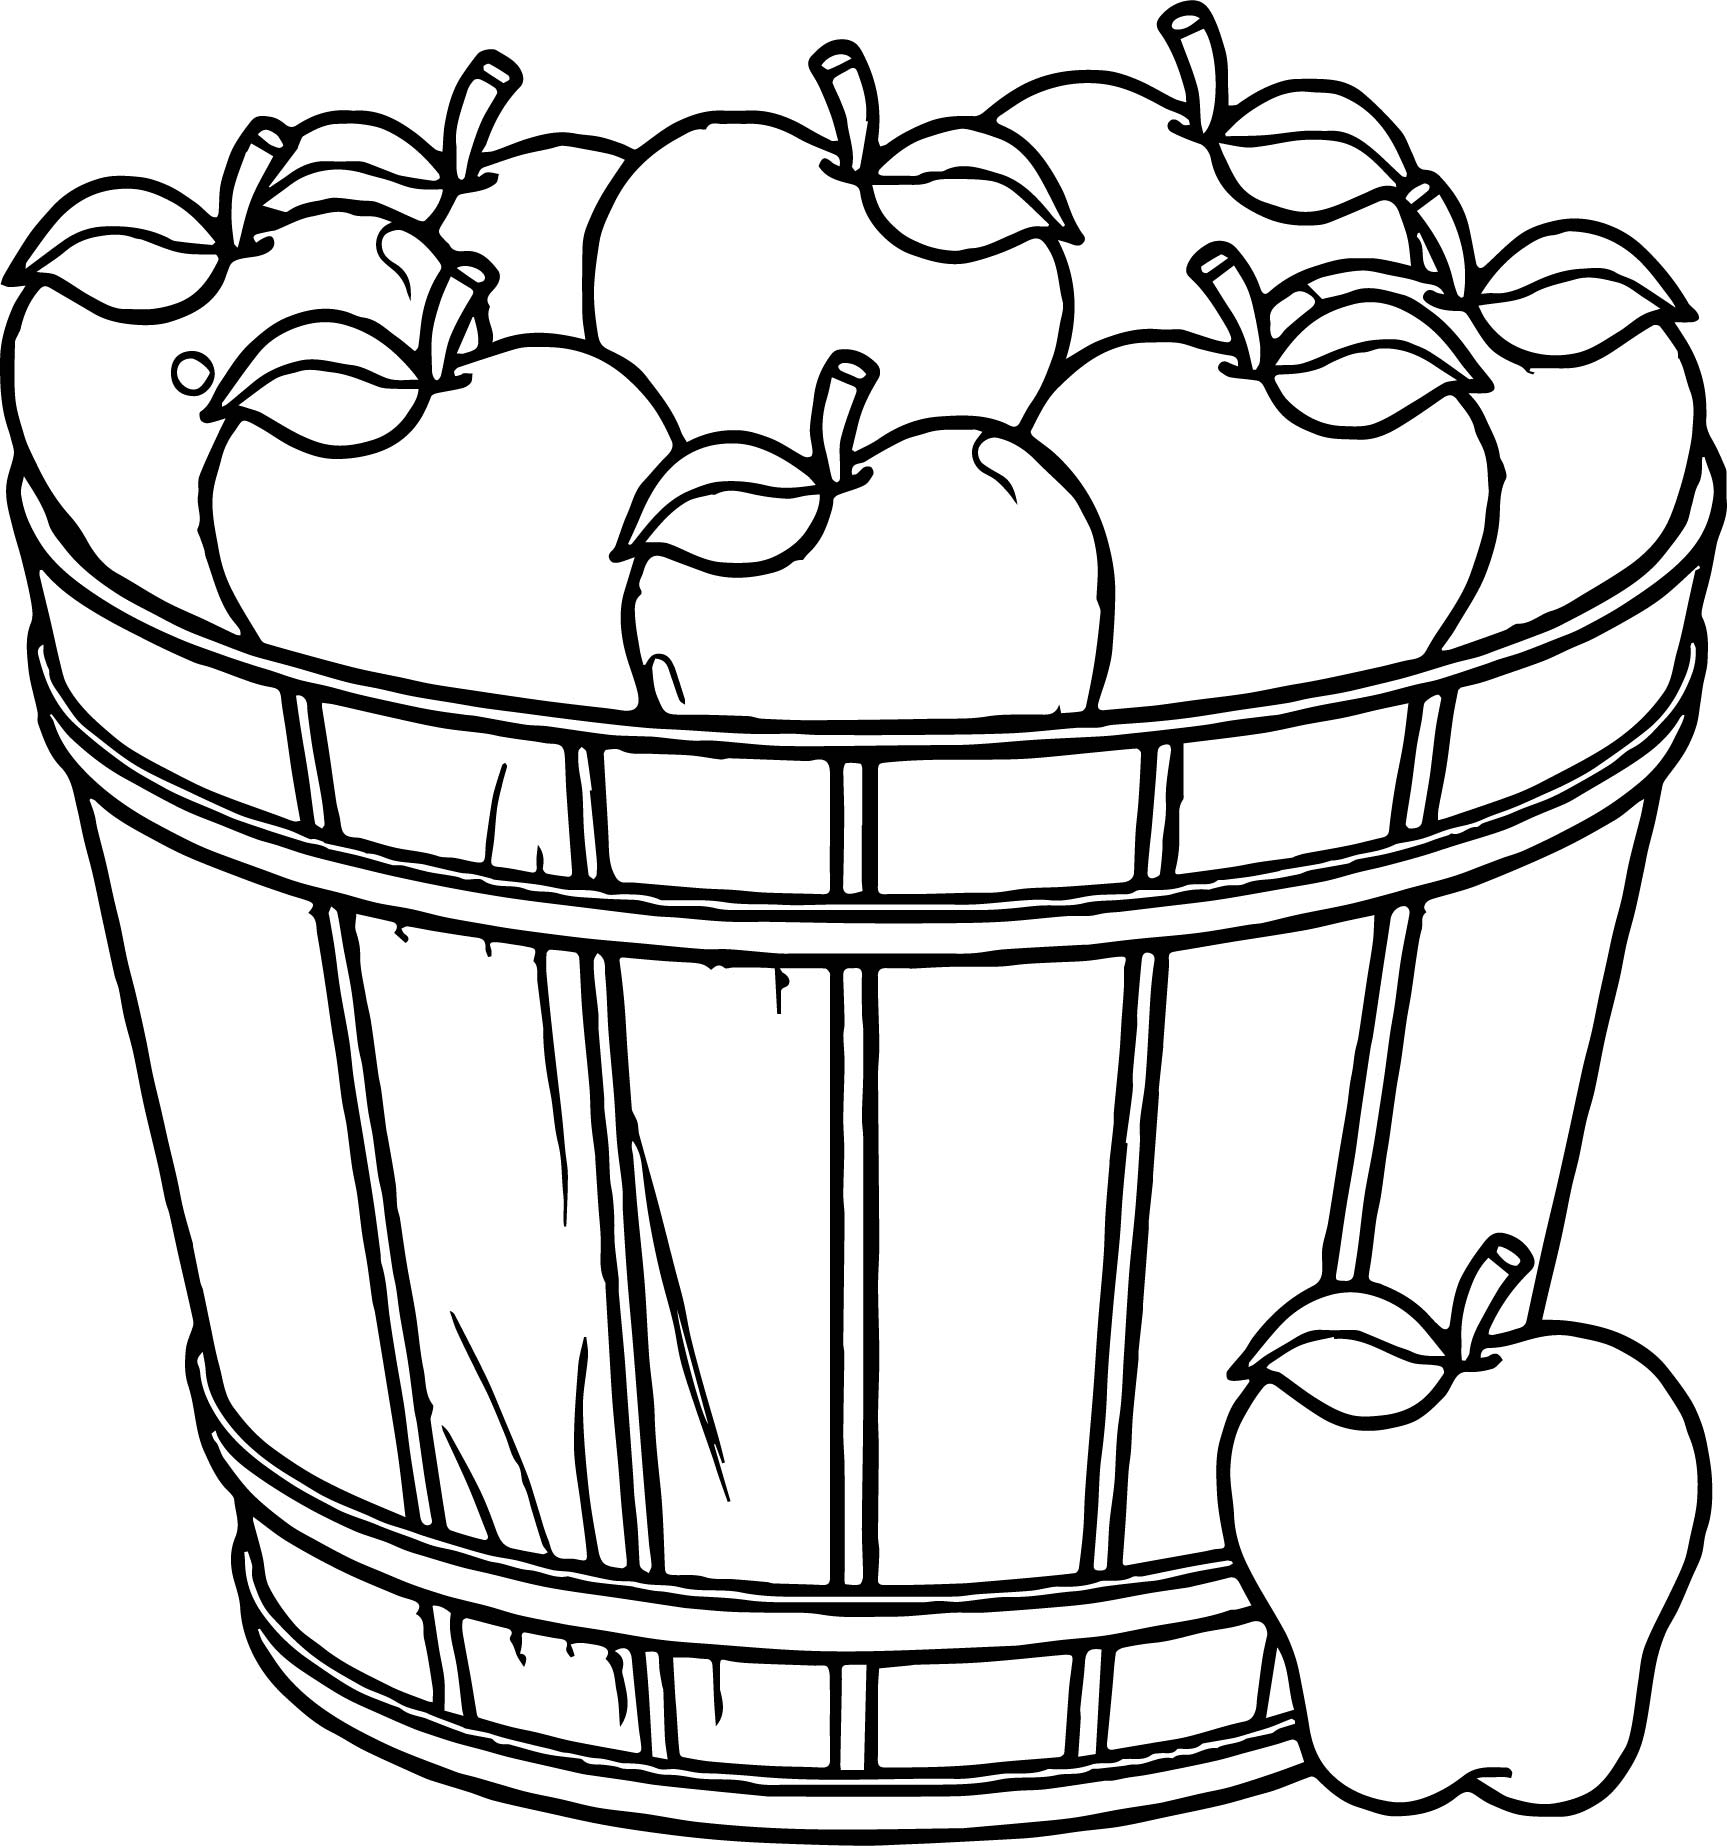 how to draw a basket of apples fruit bowl drawing at getdrawings free download apples of draw how a basket to